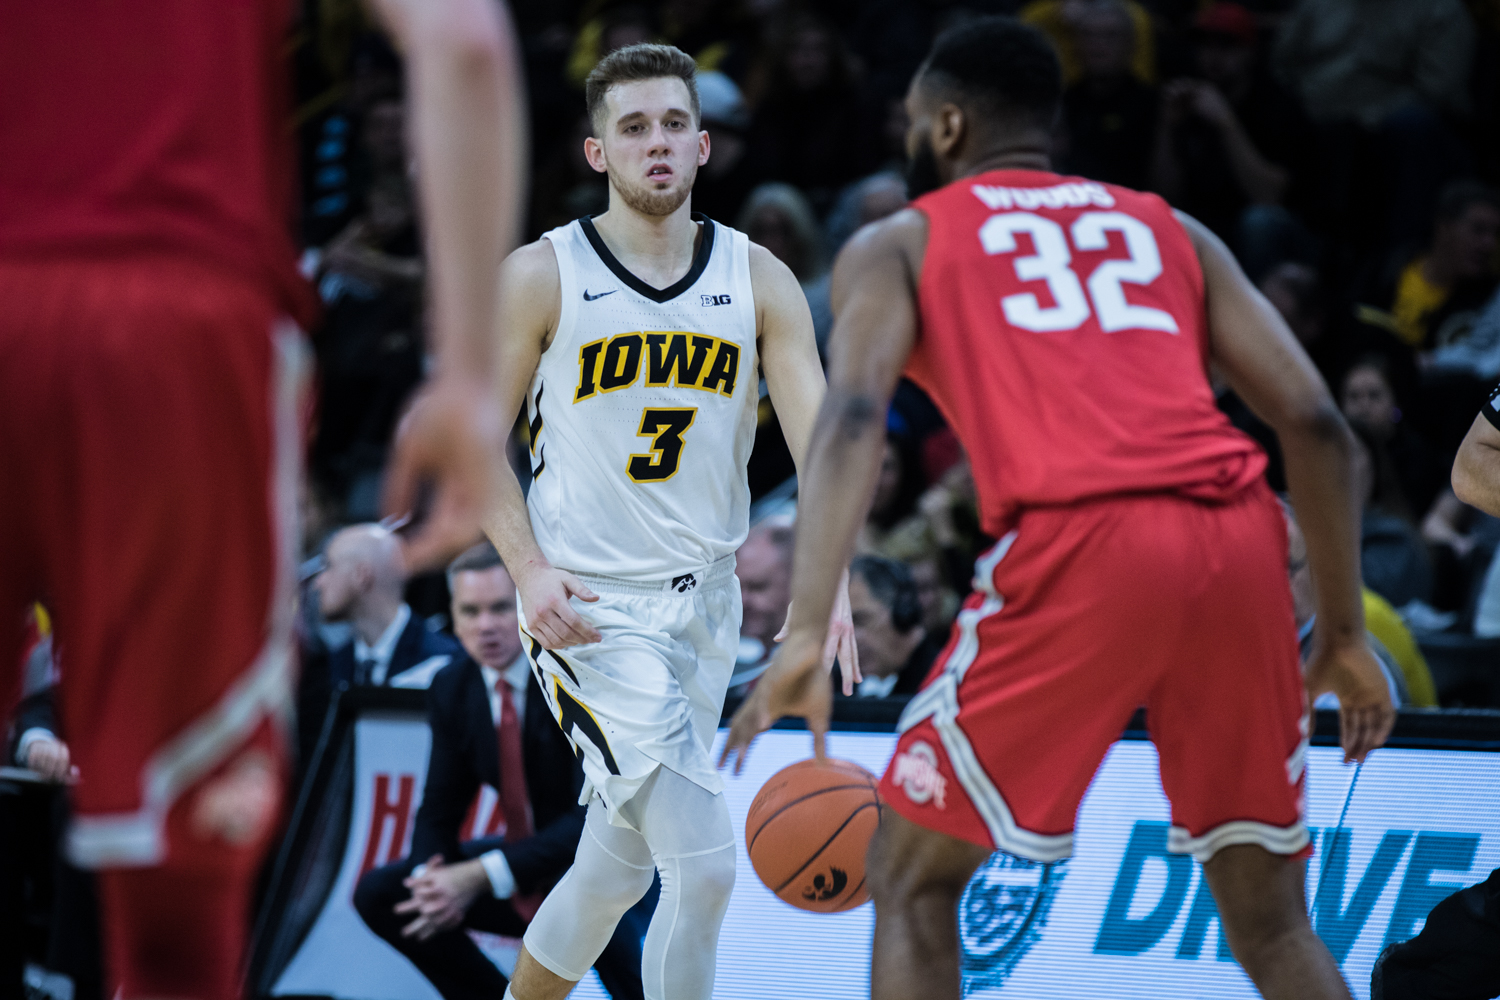 Iowa+guard+Jordan+Bohannon+surveys+the+defense+during+a+men%27s+basketball+matchup+between+Ohio+State+and+Iowa+at+Carver-Hawkeye+Arena+on+Saturday%2C+January+12%2C+2019.+The+Hawkeyes+defeated+the+Buckeyes%2C+72-62.